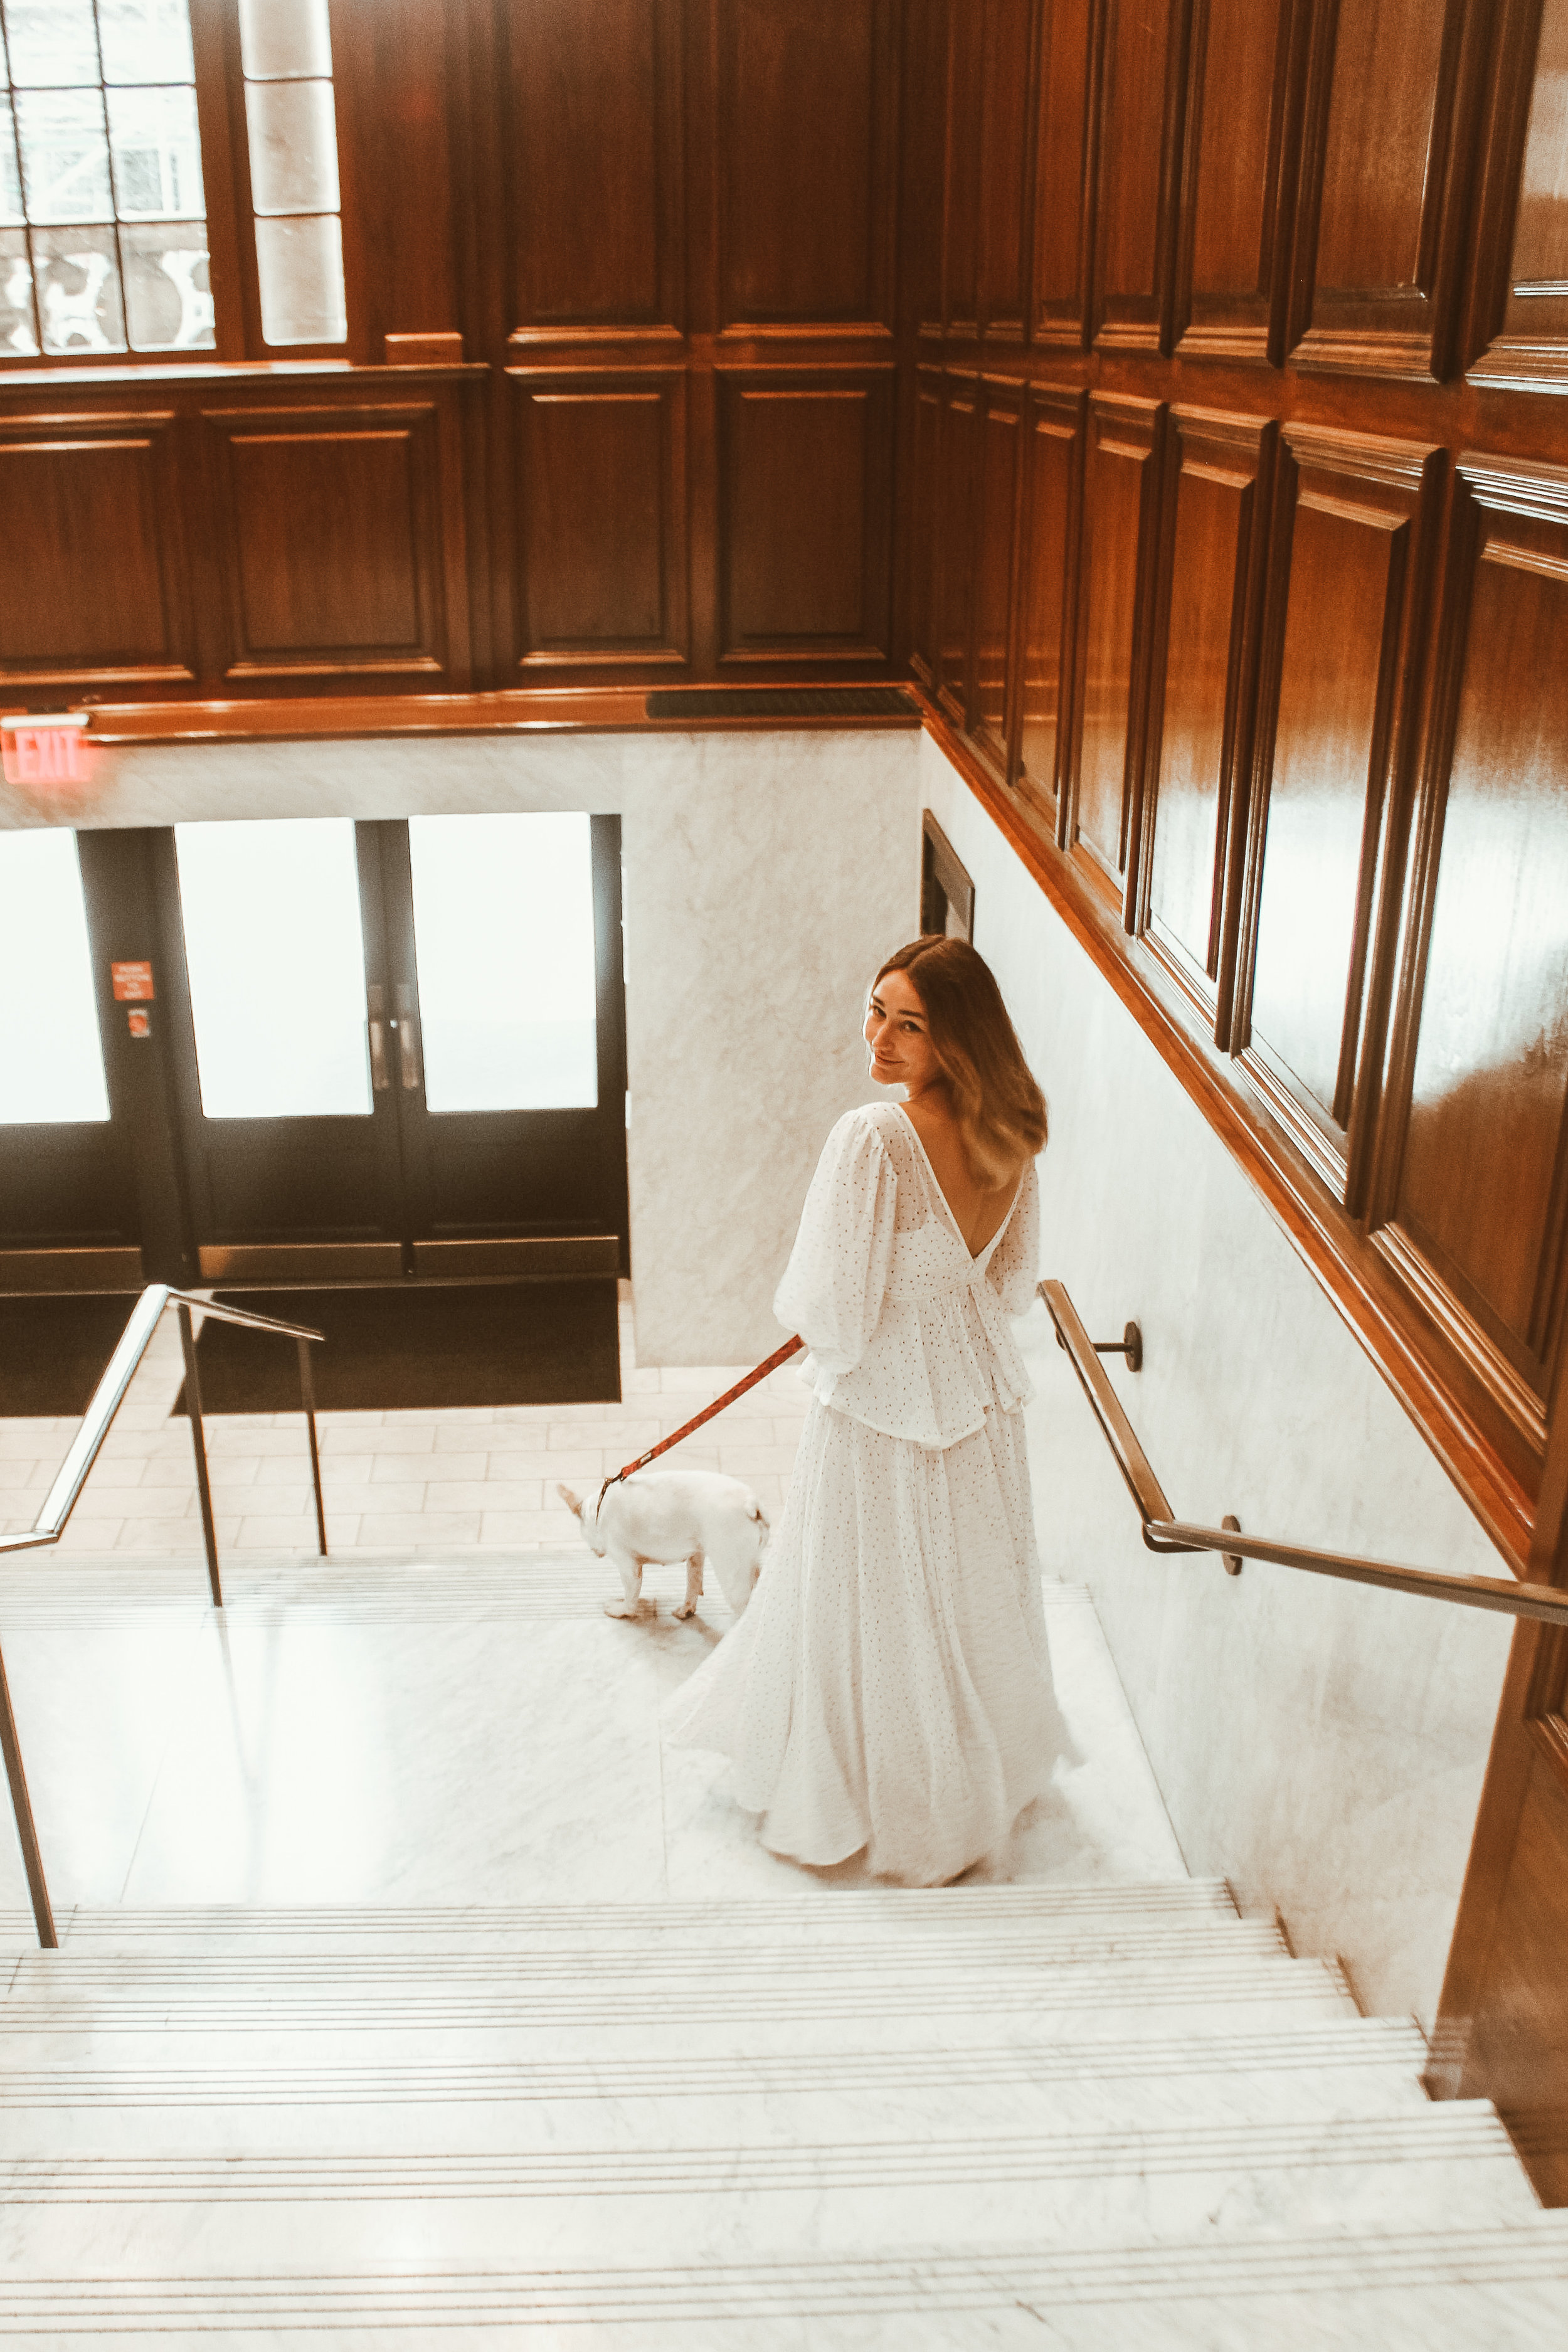 24 hours of luxury & history - A peek into our stay with the Adolphus Hotel in Dallas